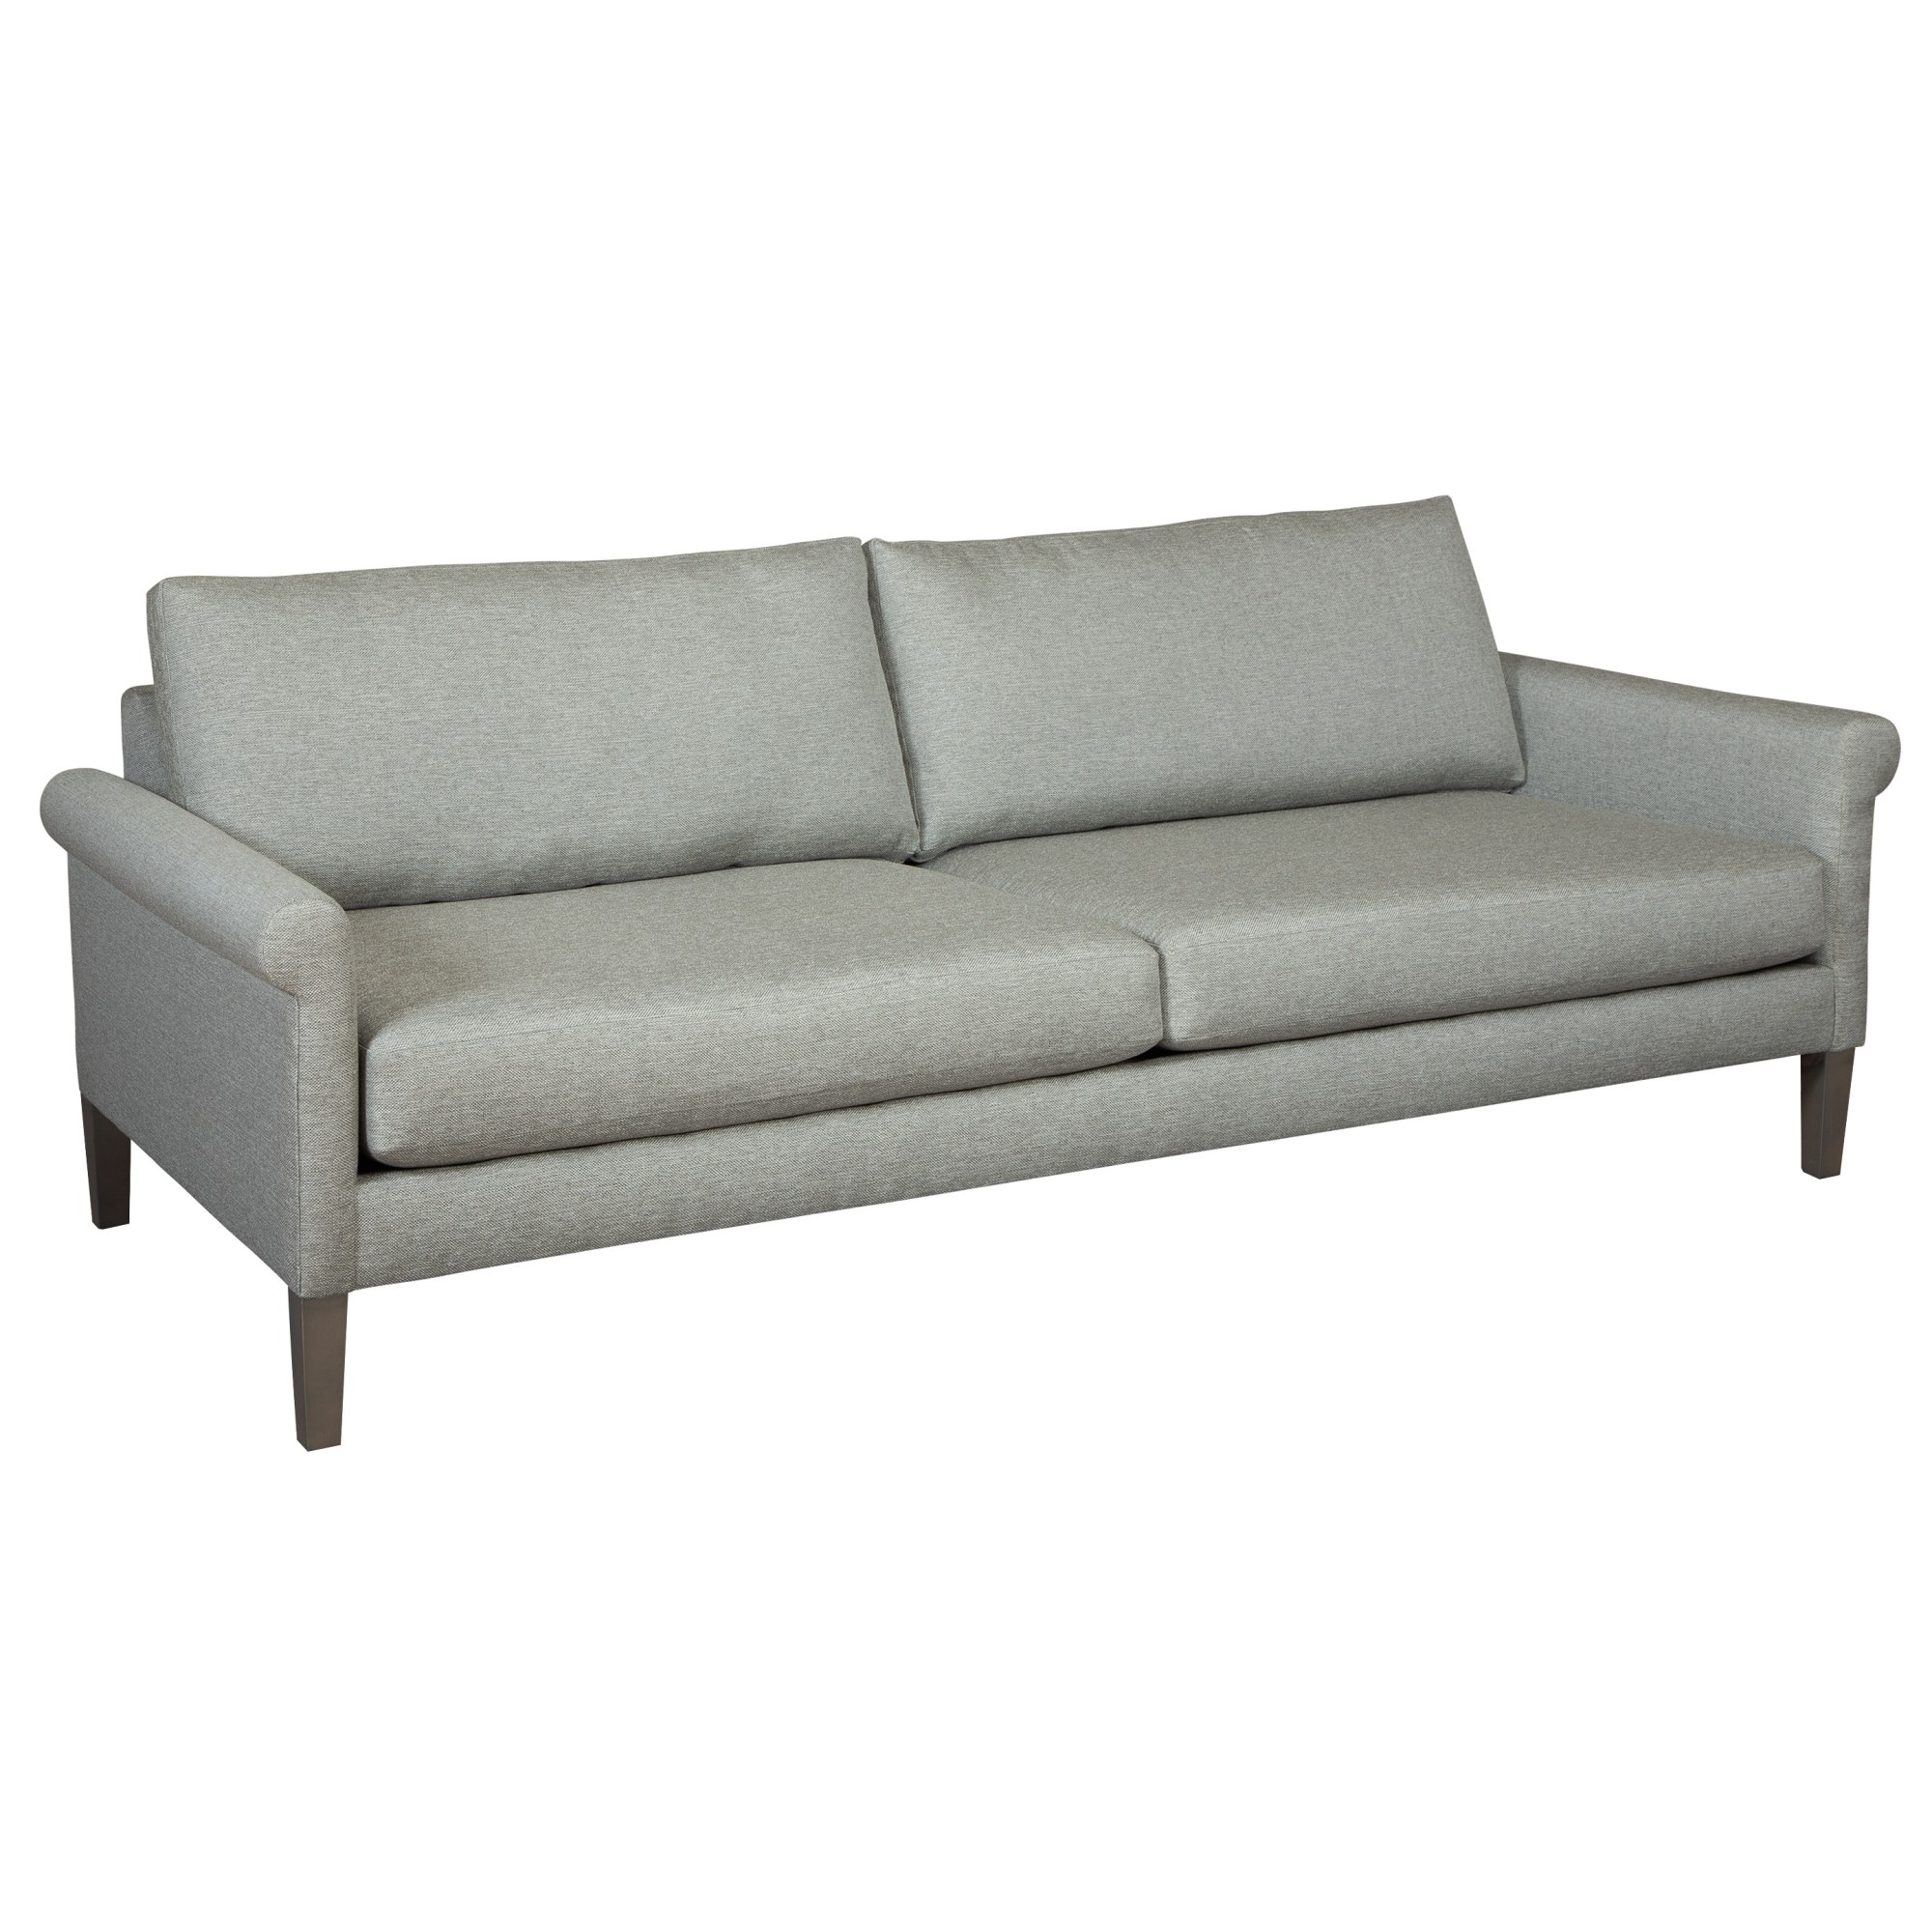 "Image for 174285 Metro 85"" Rolled Arm Sofa from Hekman Official Website"